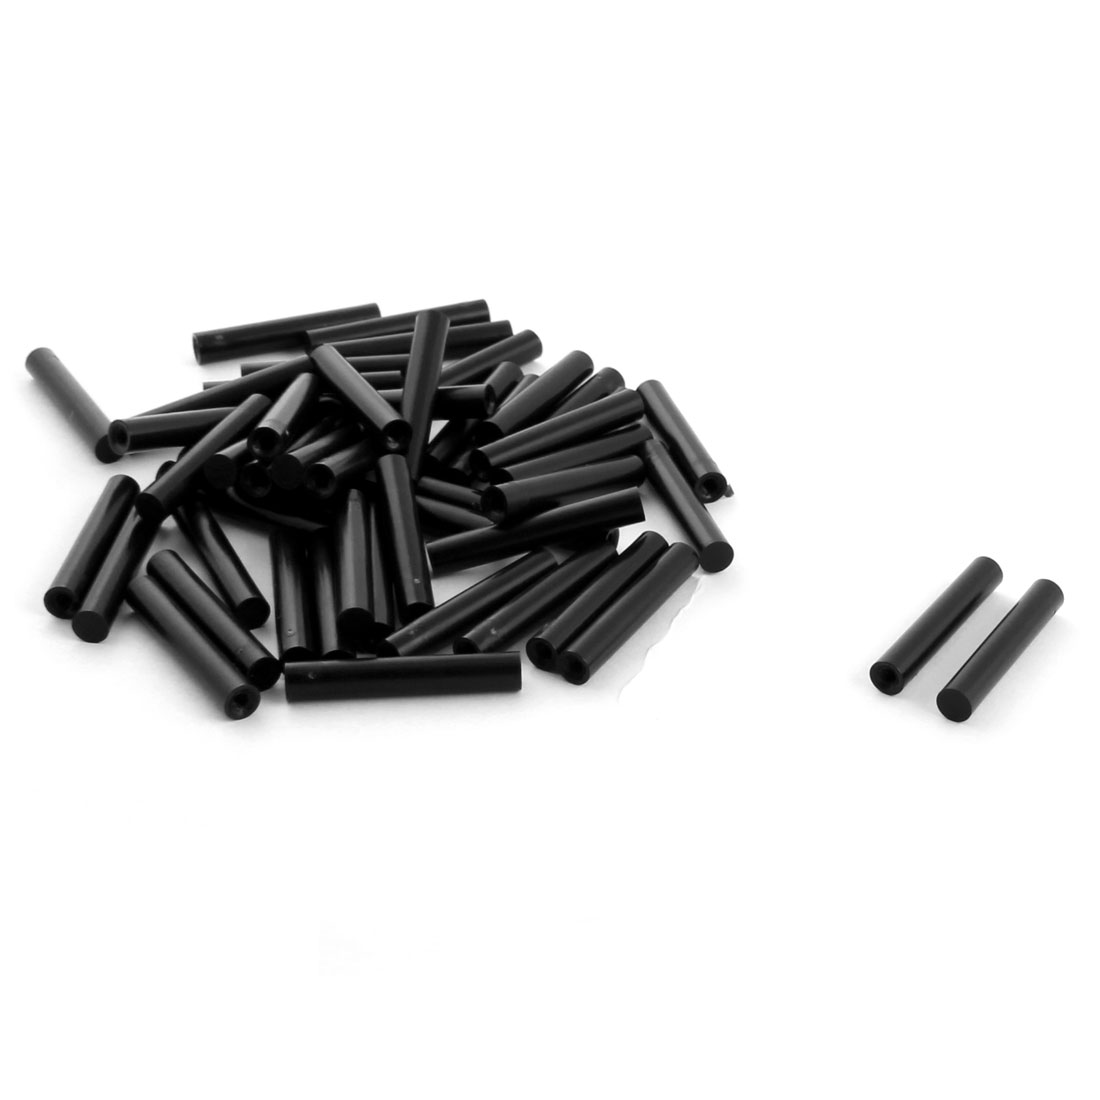 50Pcs 6x35mm PCB Test Flat End Fixture Hardware Parts Plate POM Stand Fixed Rod Black